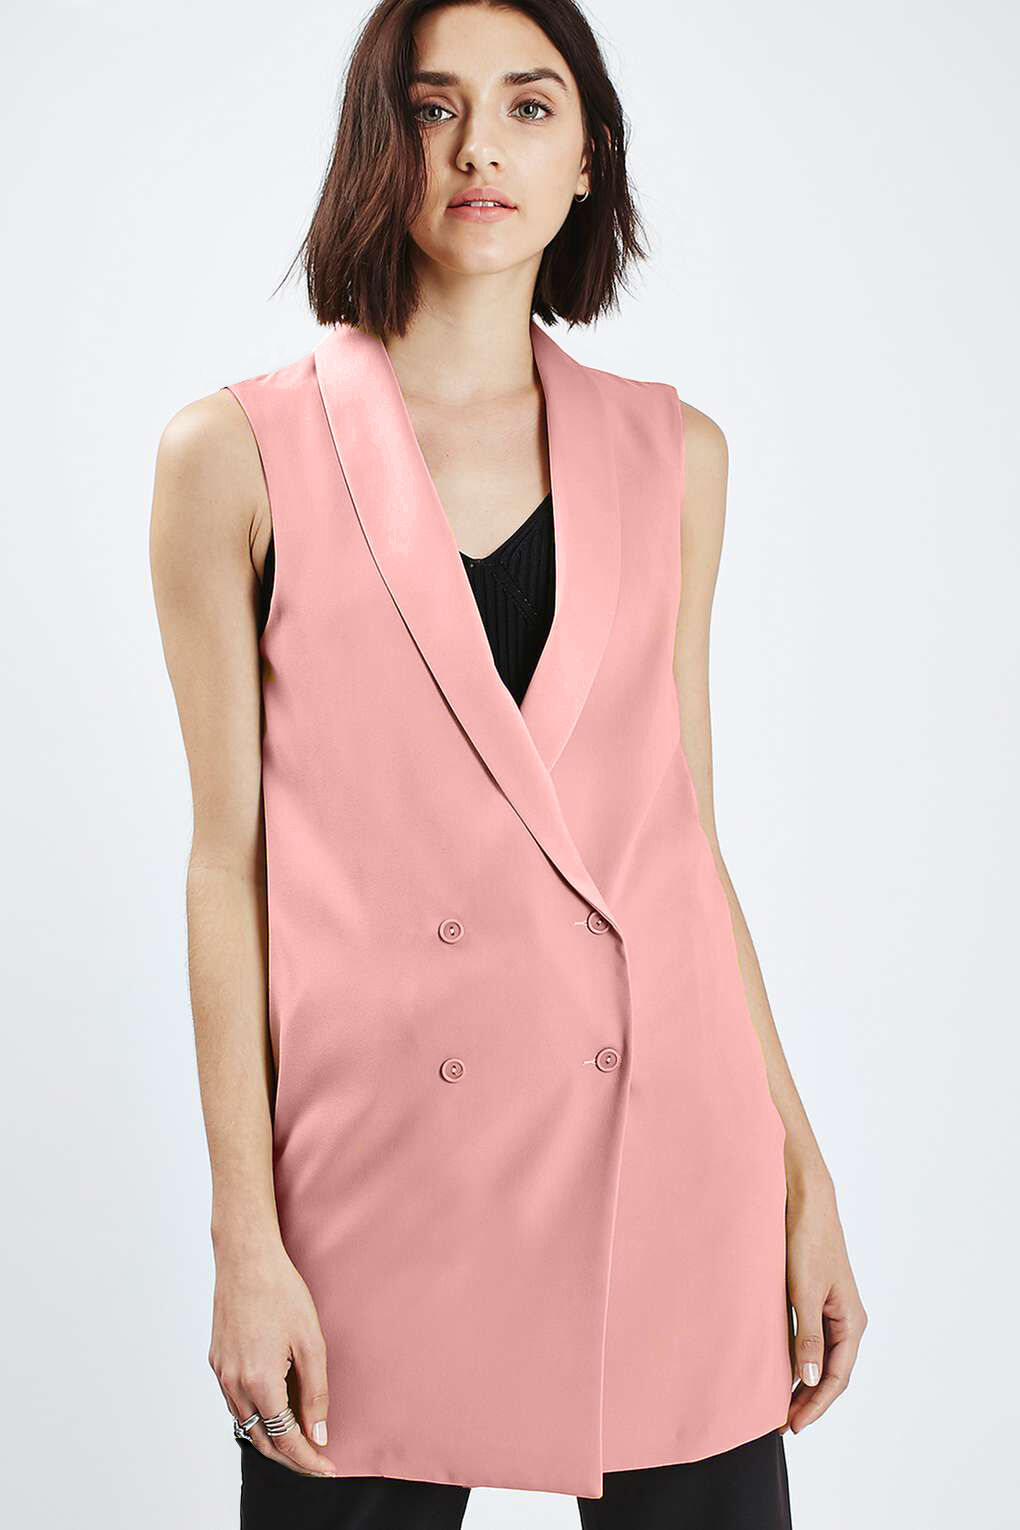 f1001a0518 Details about Topshop Longline Sleeveless Blazer Jacket Dress in Dusky Pink  Size 4 to 16